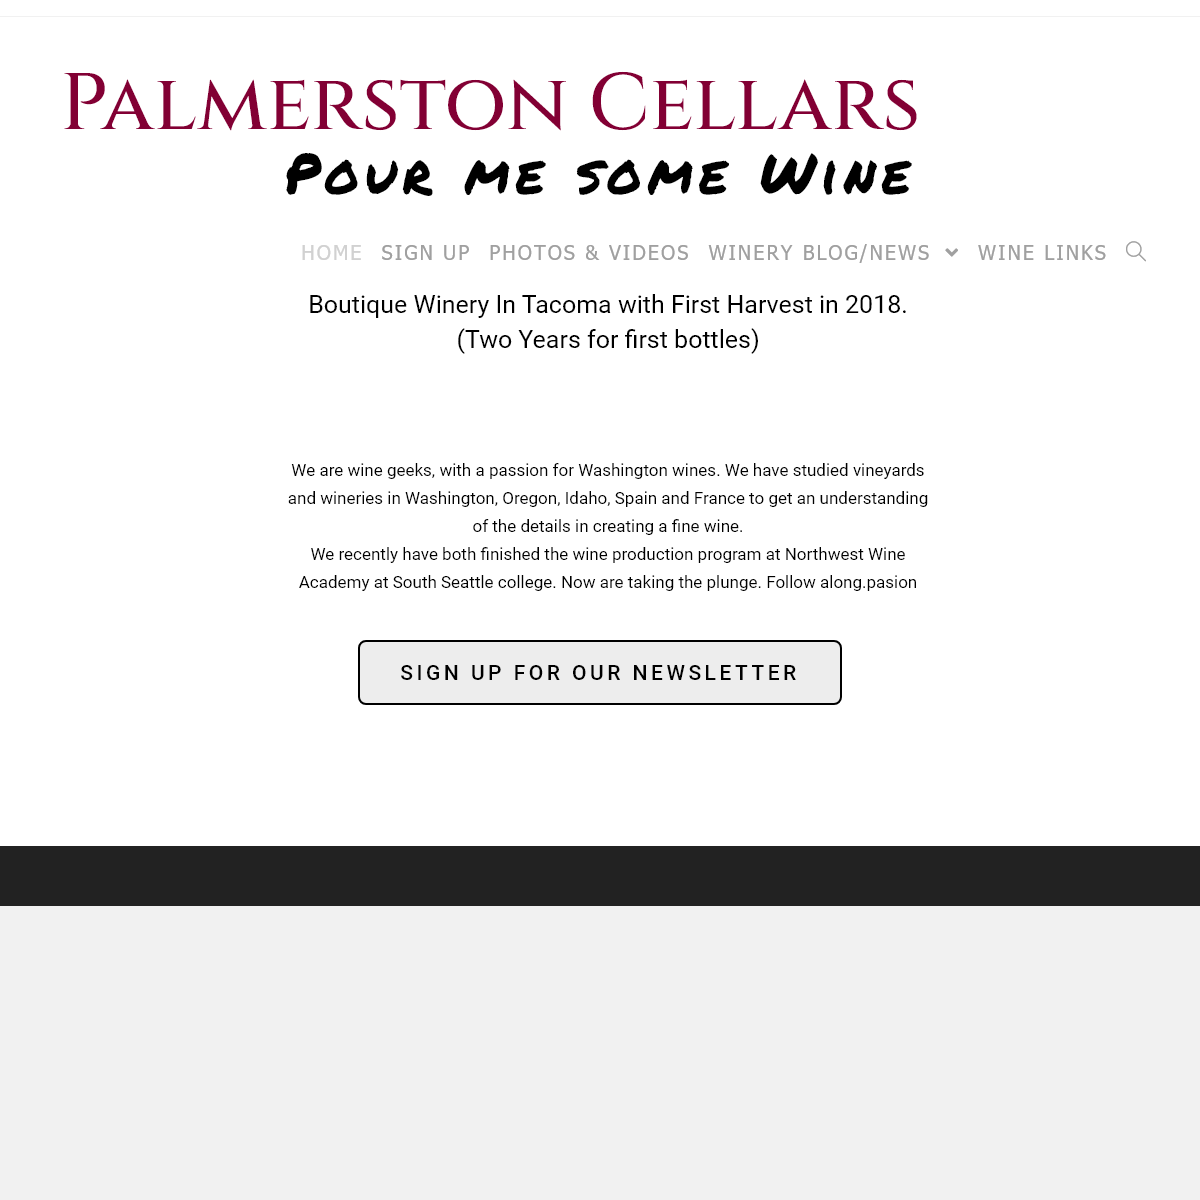 Palmerston Cellars – Winery